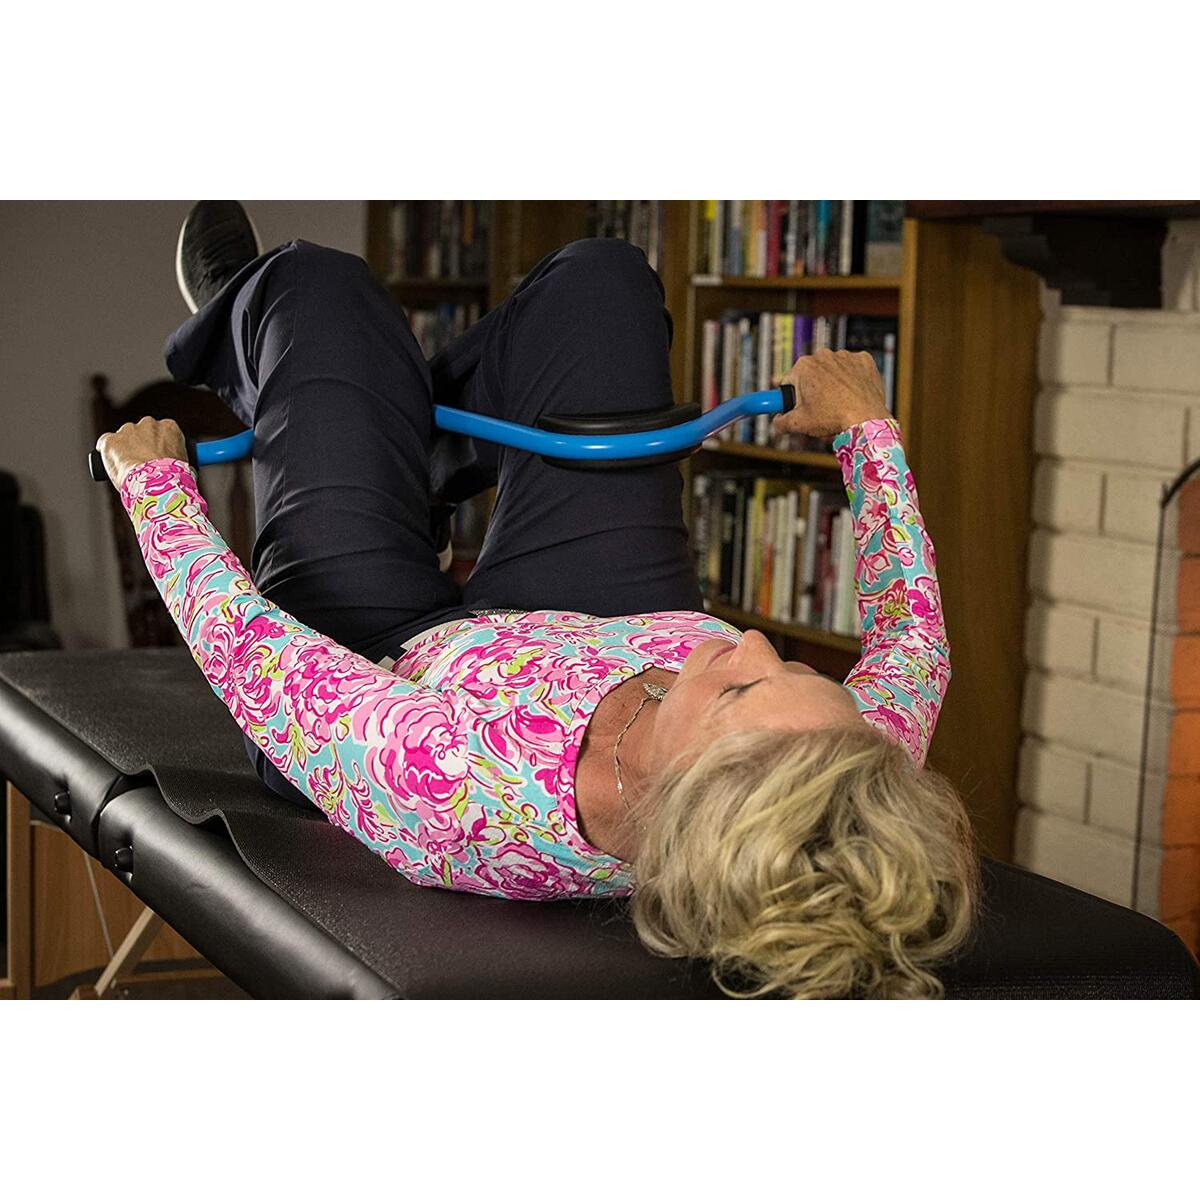 The Back Pedal Can Relieve Lower Back Pain and Strengthen, Realign, and Stabilize The Pelvis, Fast Results, Light Weight and Easy To Use, Patent Pending Technology